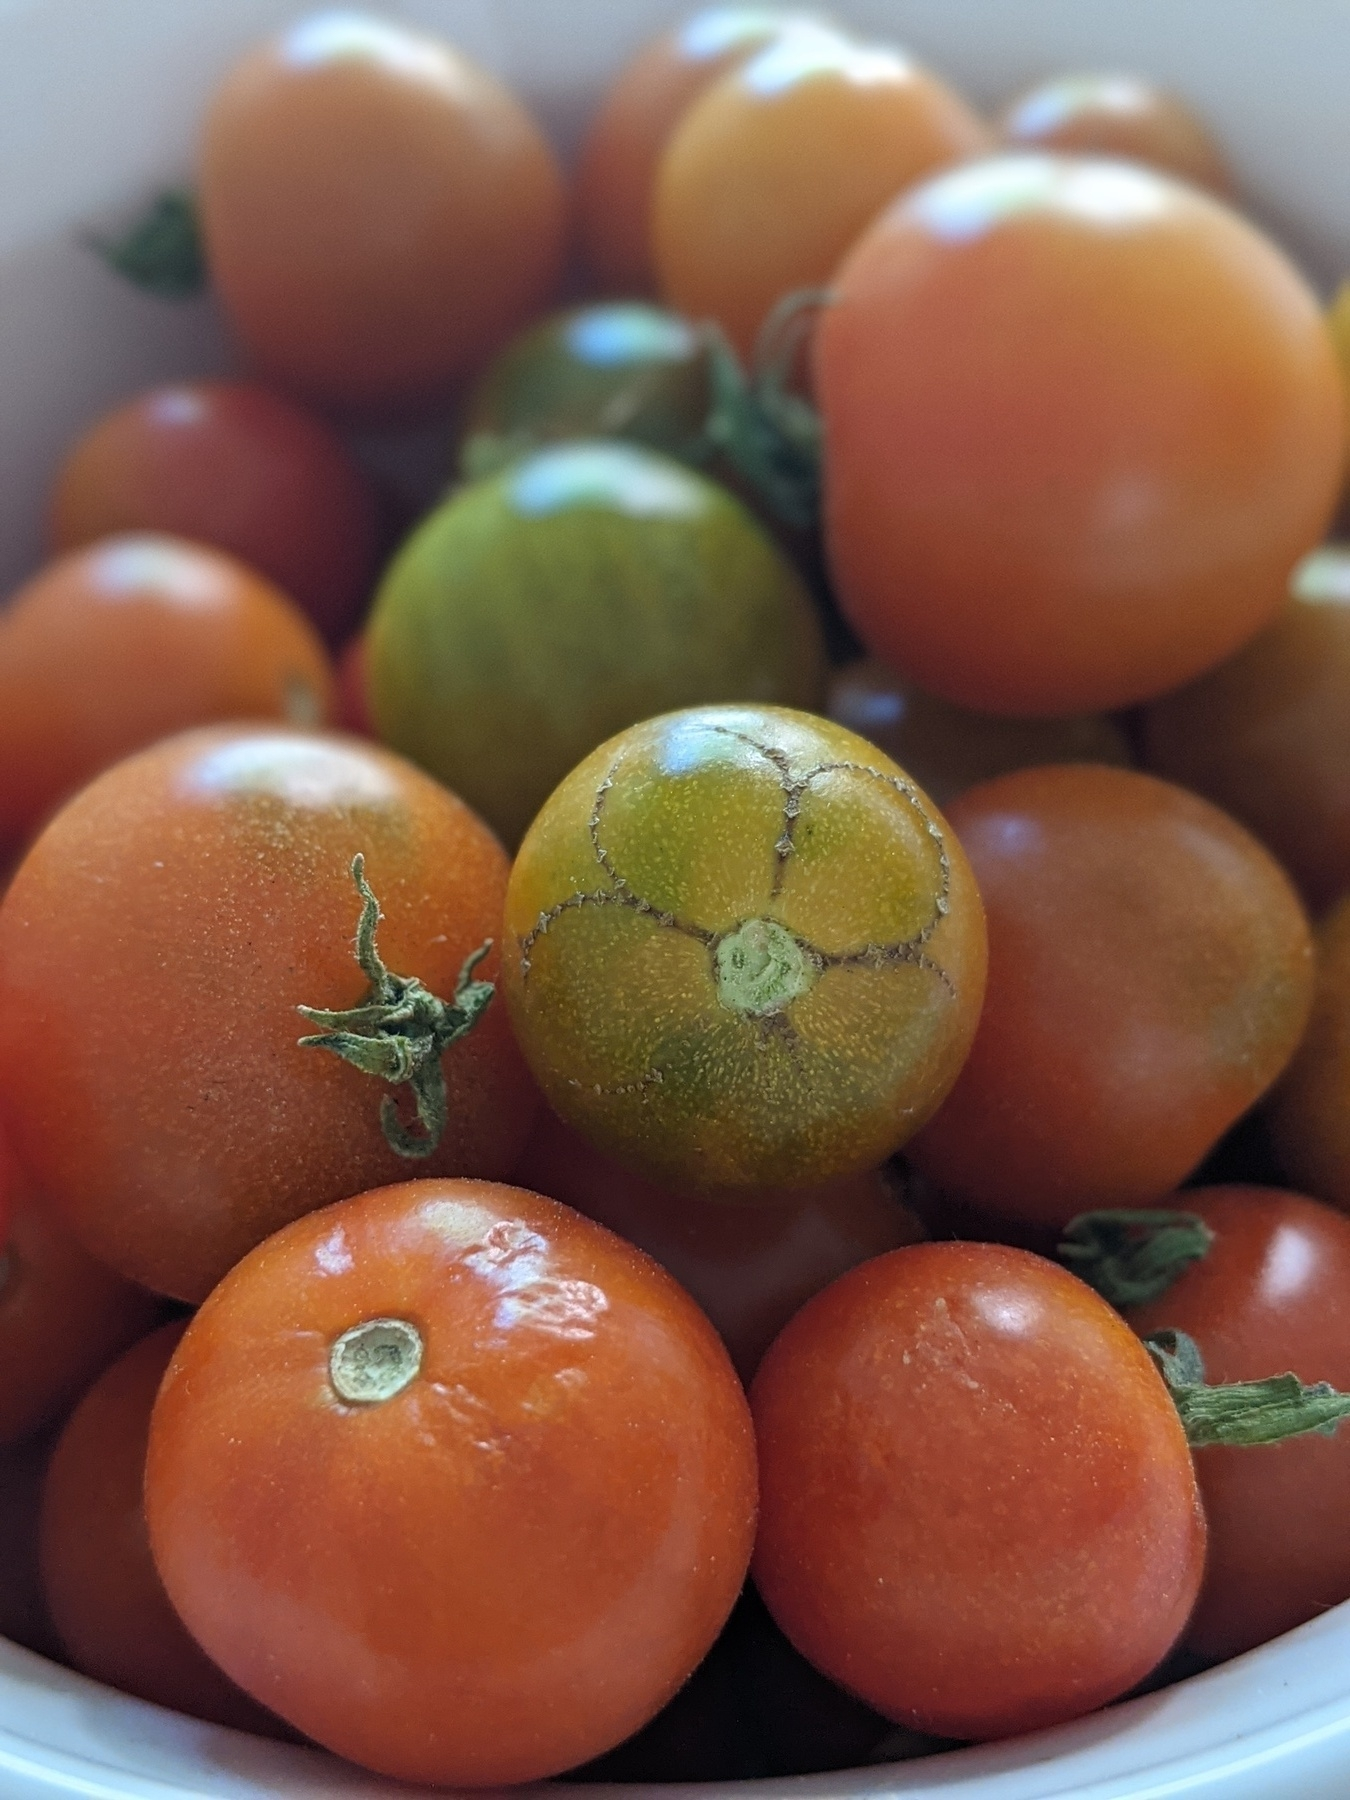 Small white bowl filled with cherry tomatoes. One tomato near the center has brown lines on it in that create the shape of big round flower petals.